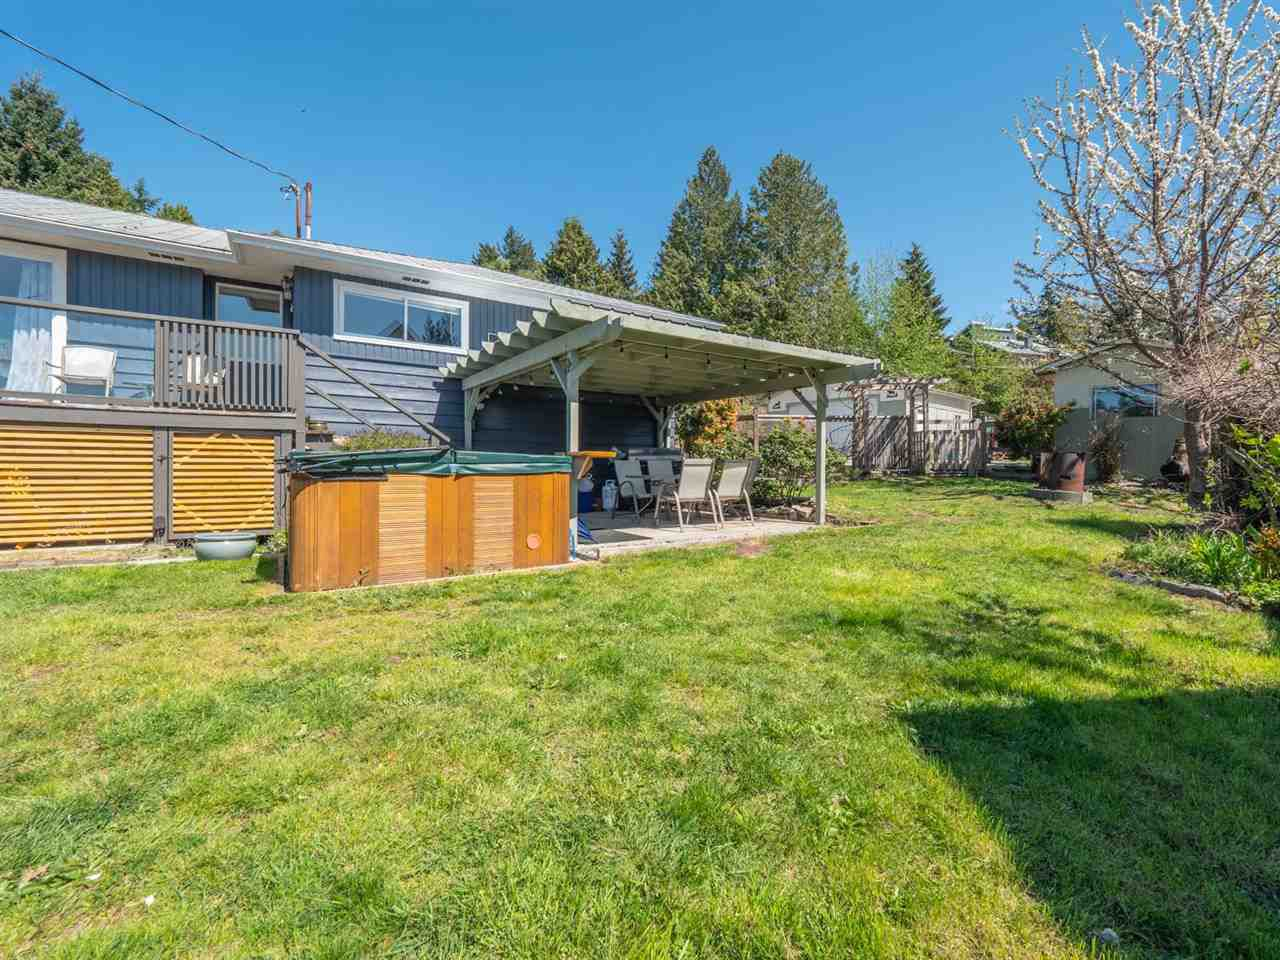 Main Photo: 5498 MASON Road in Sechelt: Sechelt District House for sale (Sunshine Coast)  : MLS®# R2360988